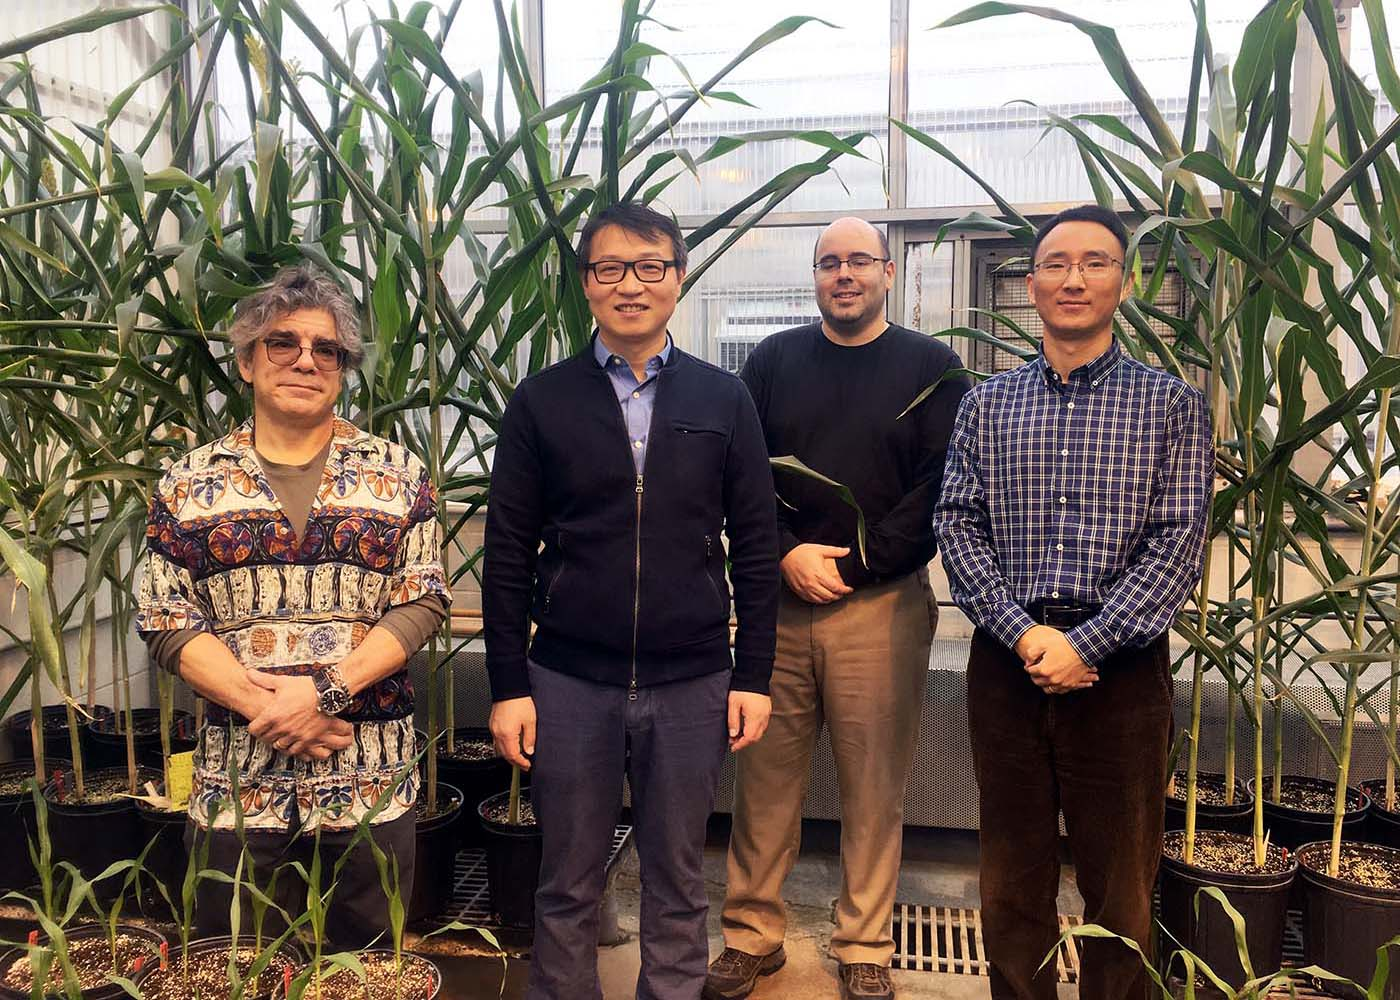 UNL's Tom Clemente, Jinliang Yang, James Schnable and Yufeng Ge collaborate on new NSF-funded plant science research